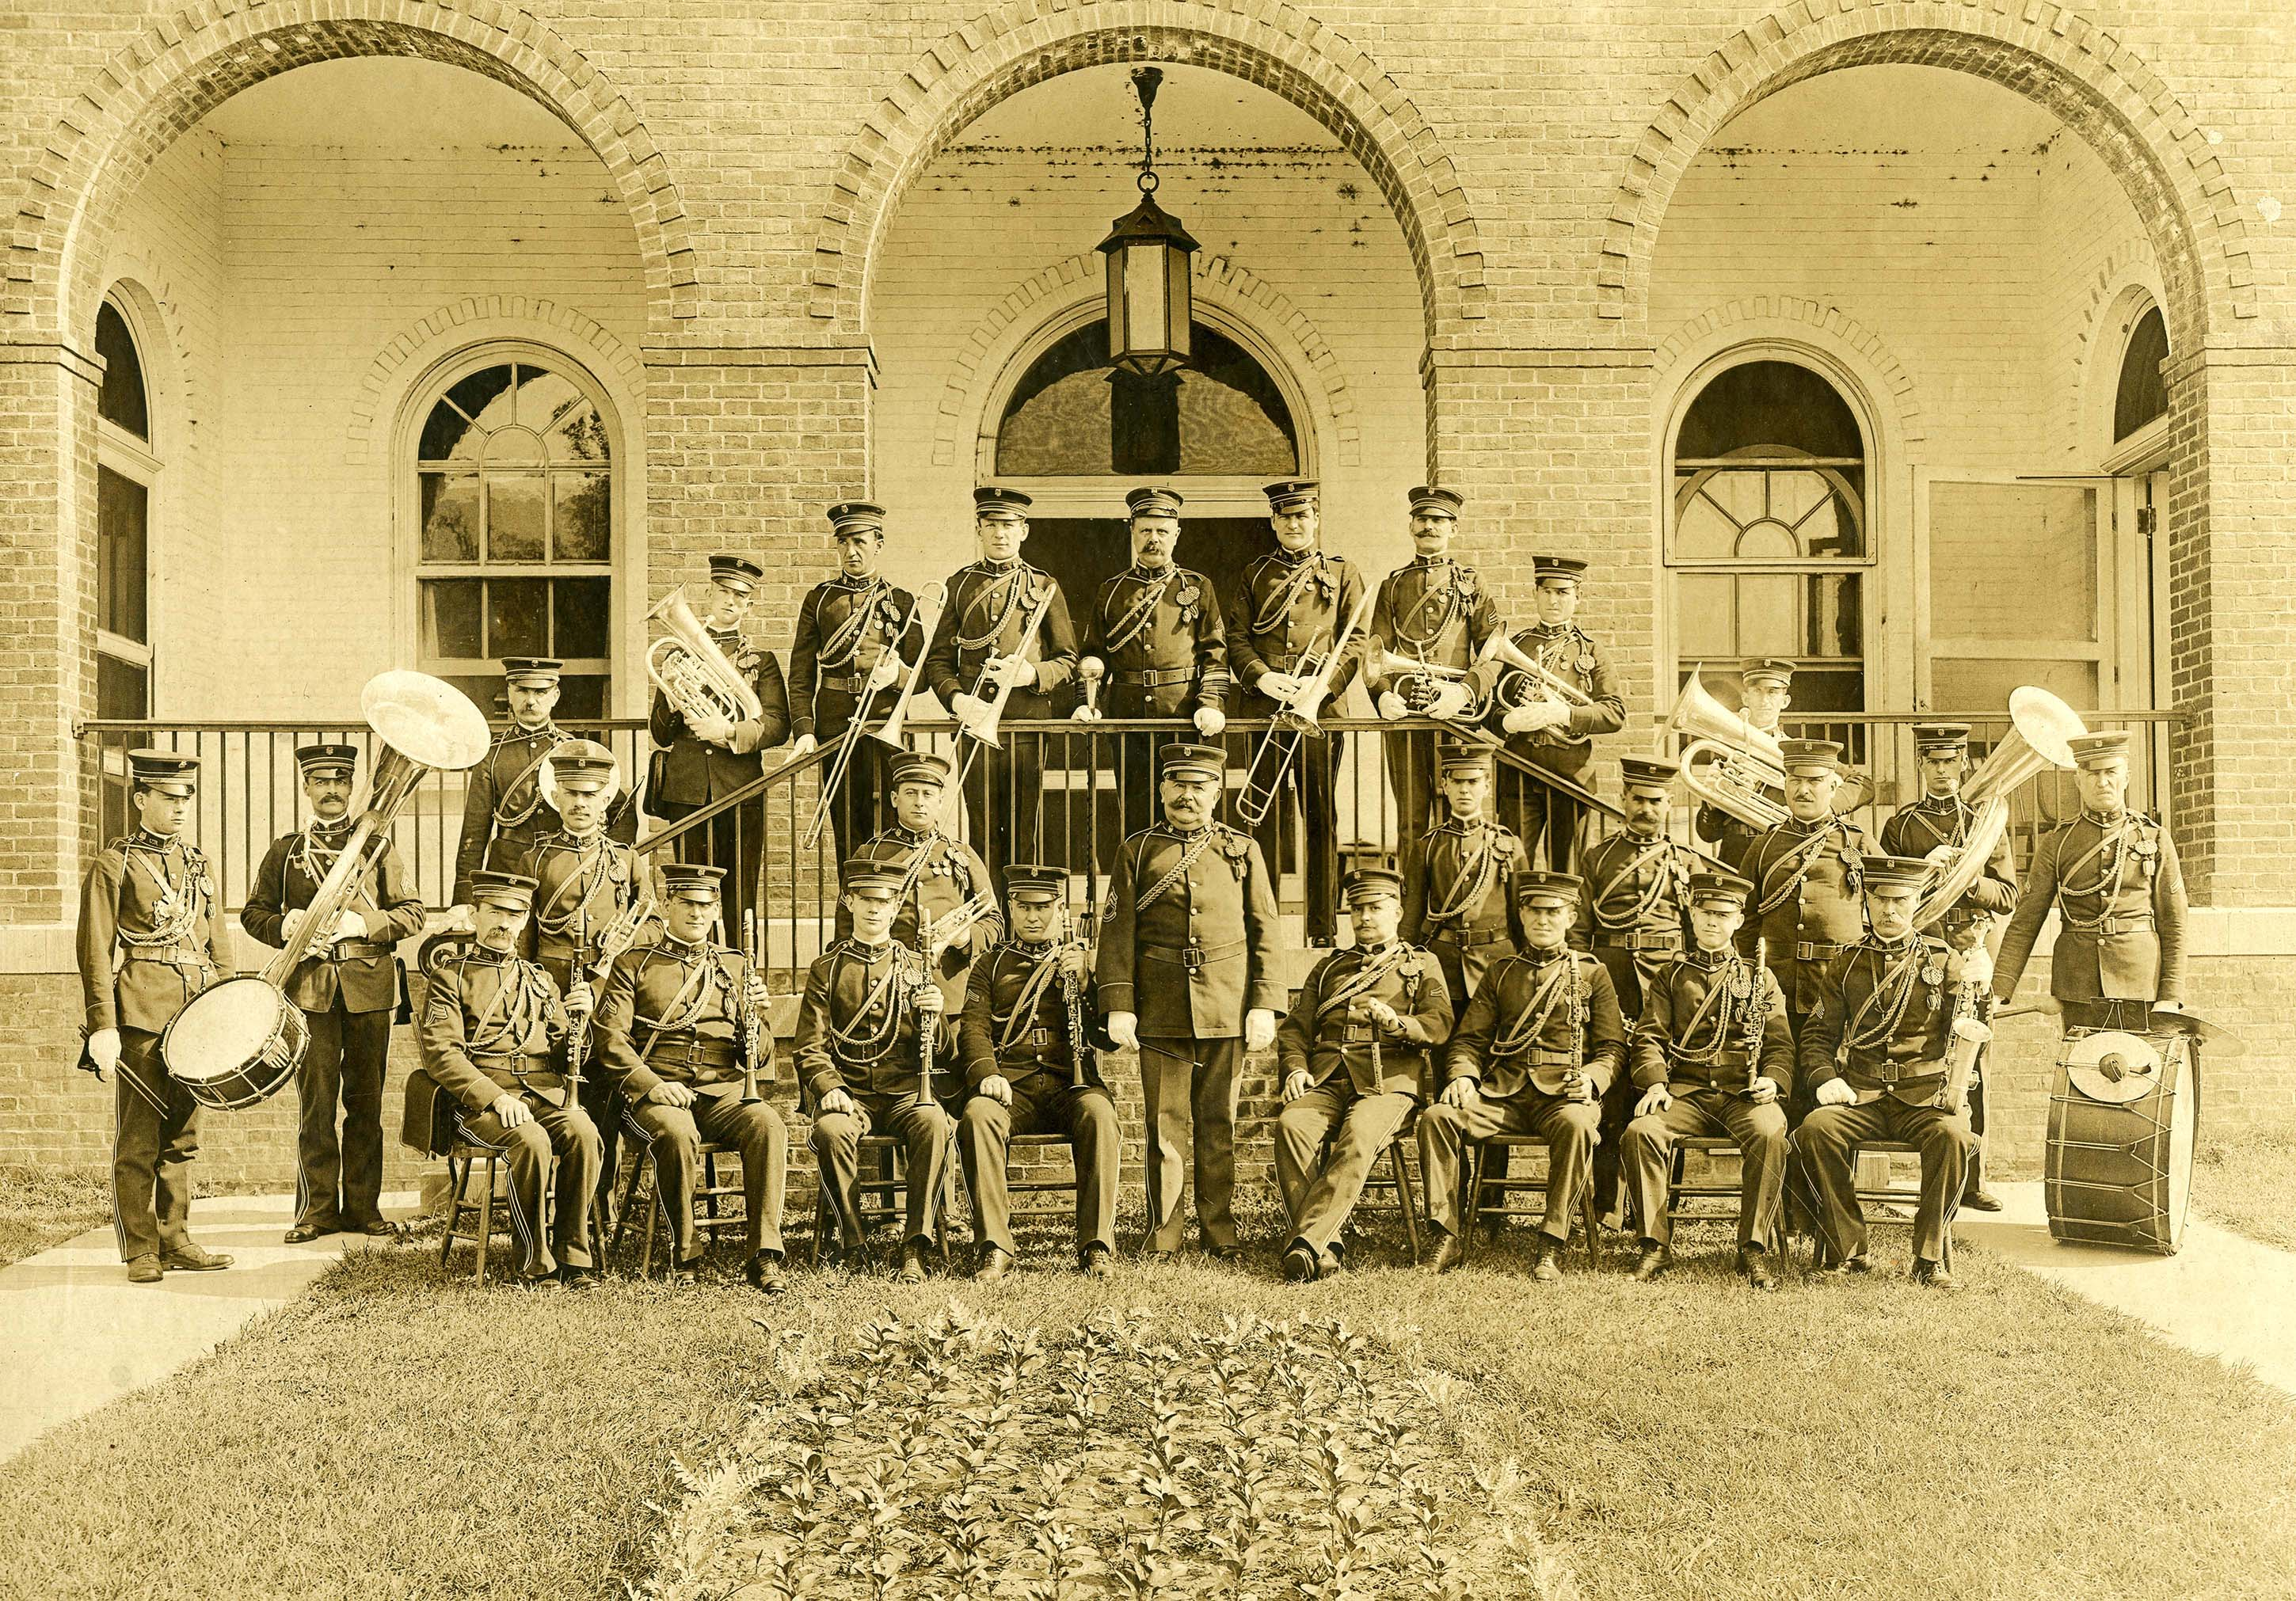 Engineer Band formal portrait at Washington Barracks DC